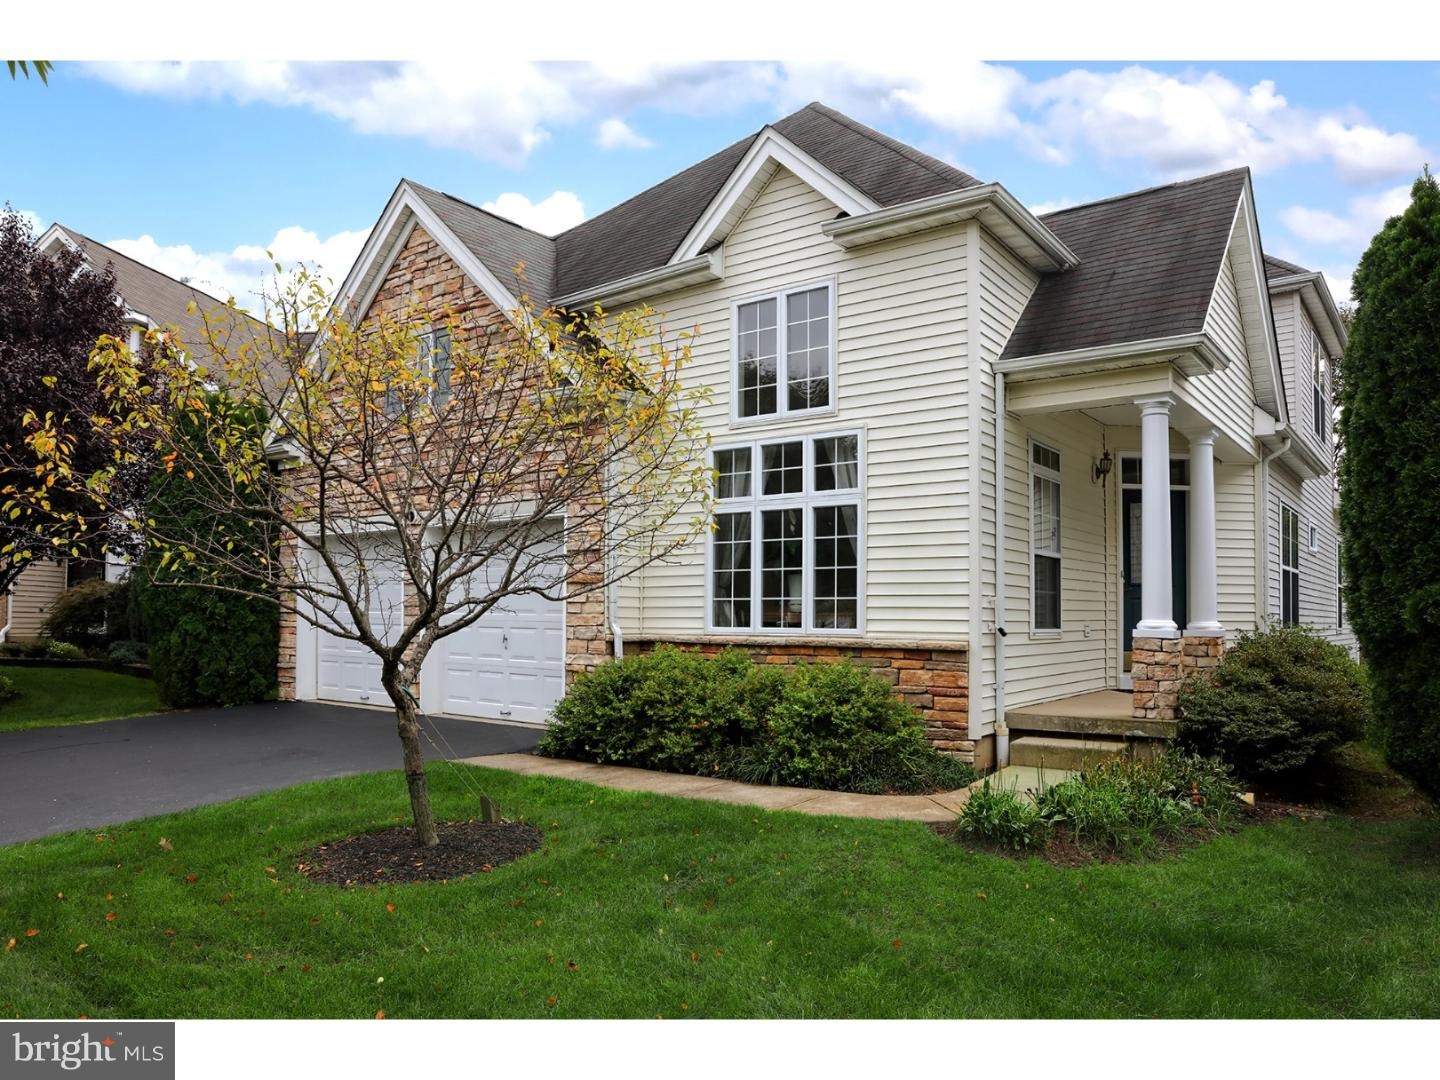 Property for Sale at 55 GLOBEFLOWER Lane Princeton Junction, New Jersey 08550 United States